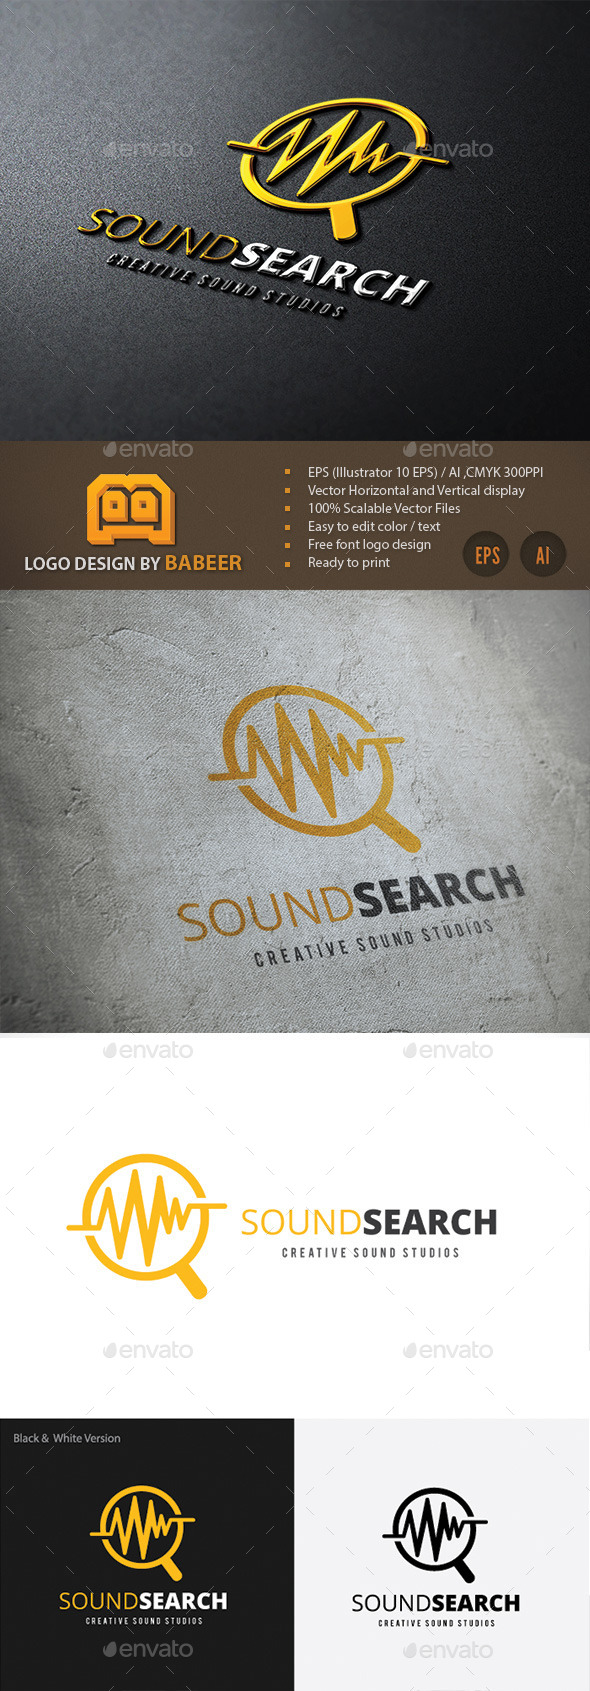 Sound Search - Vector Abstract